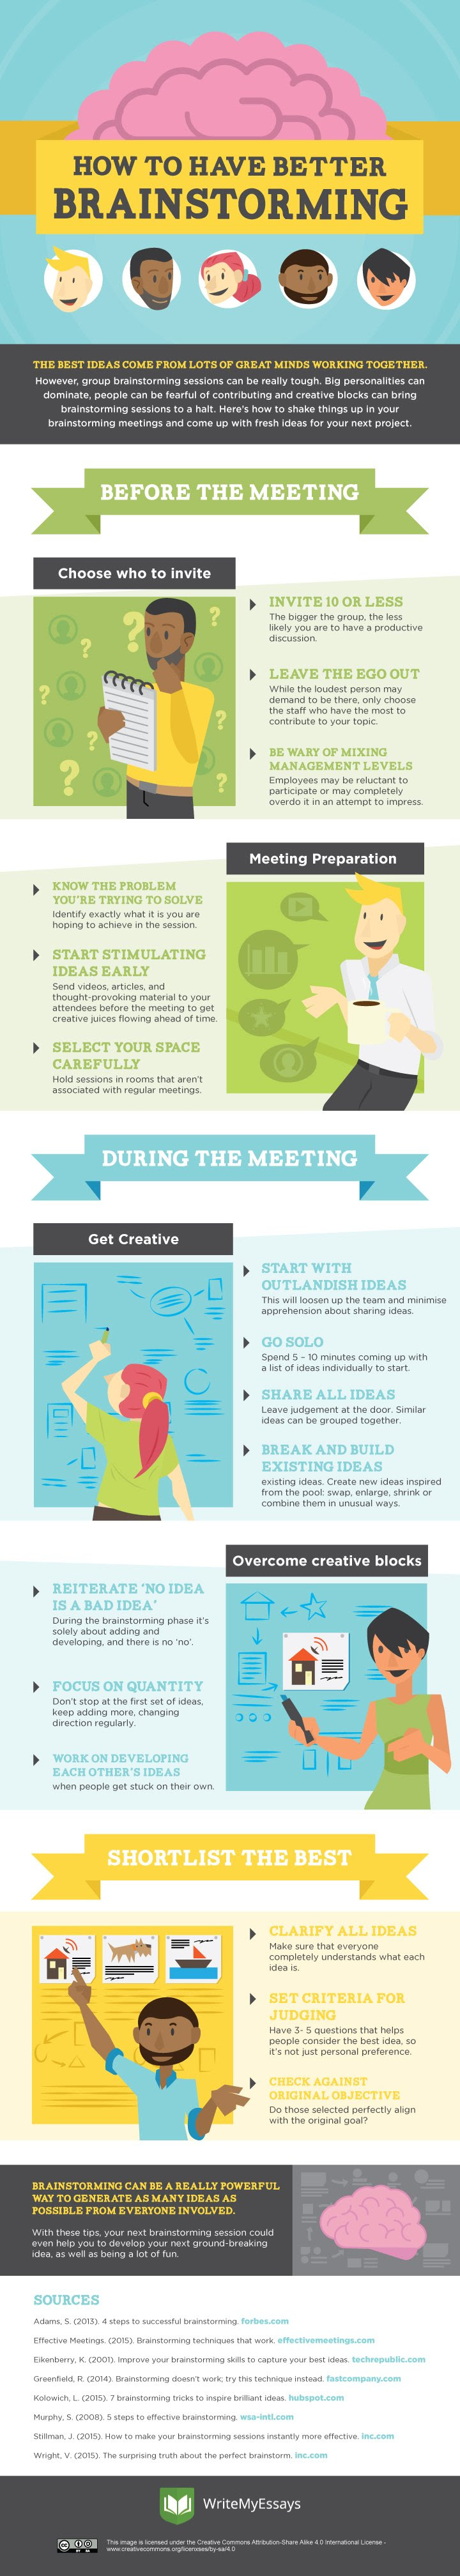 How to Have Better Brainstorming